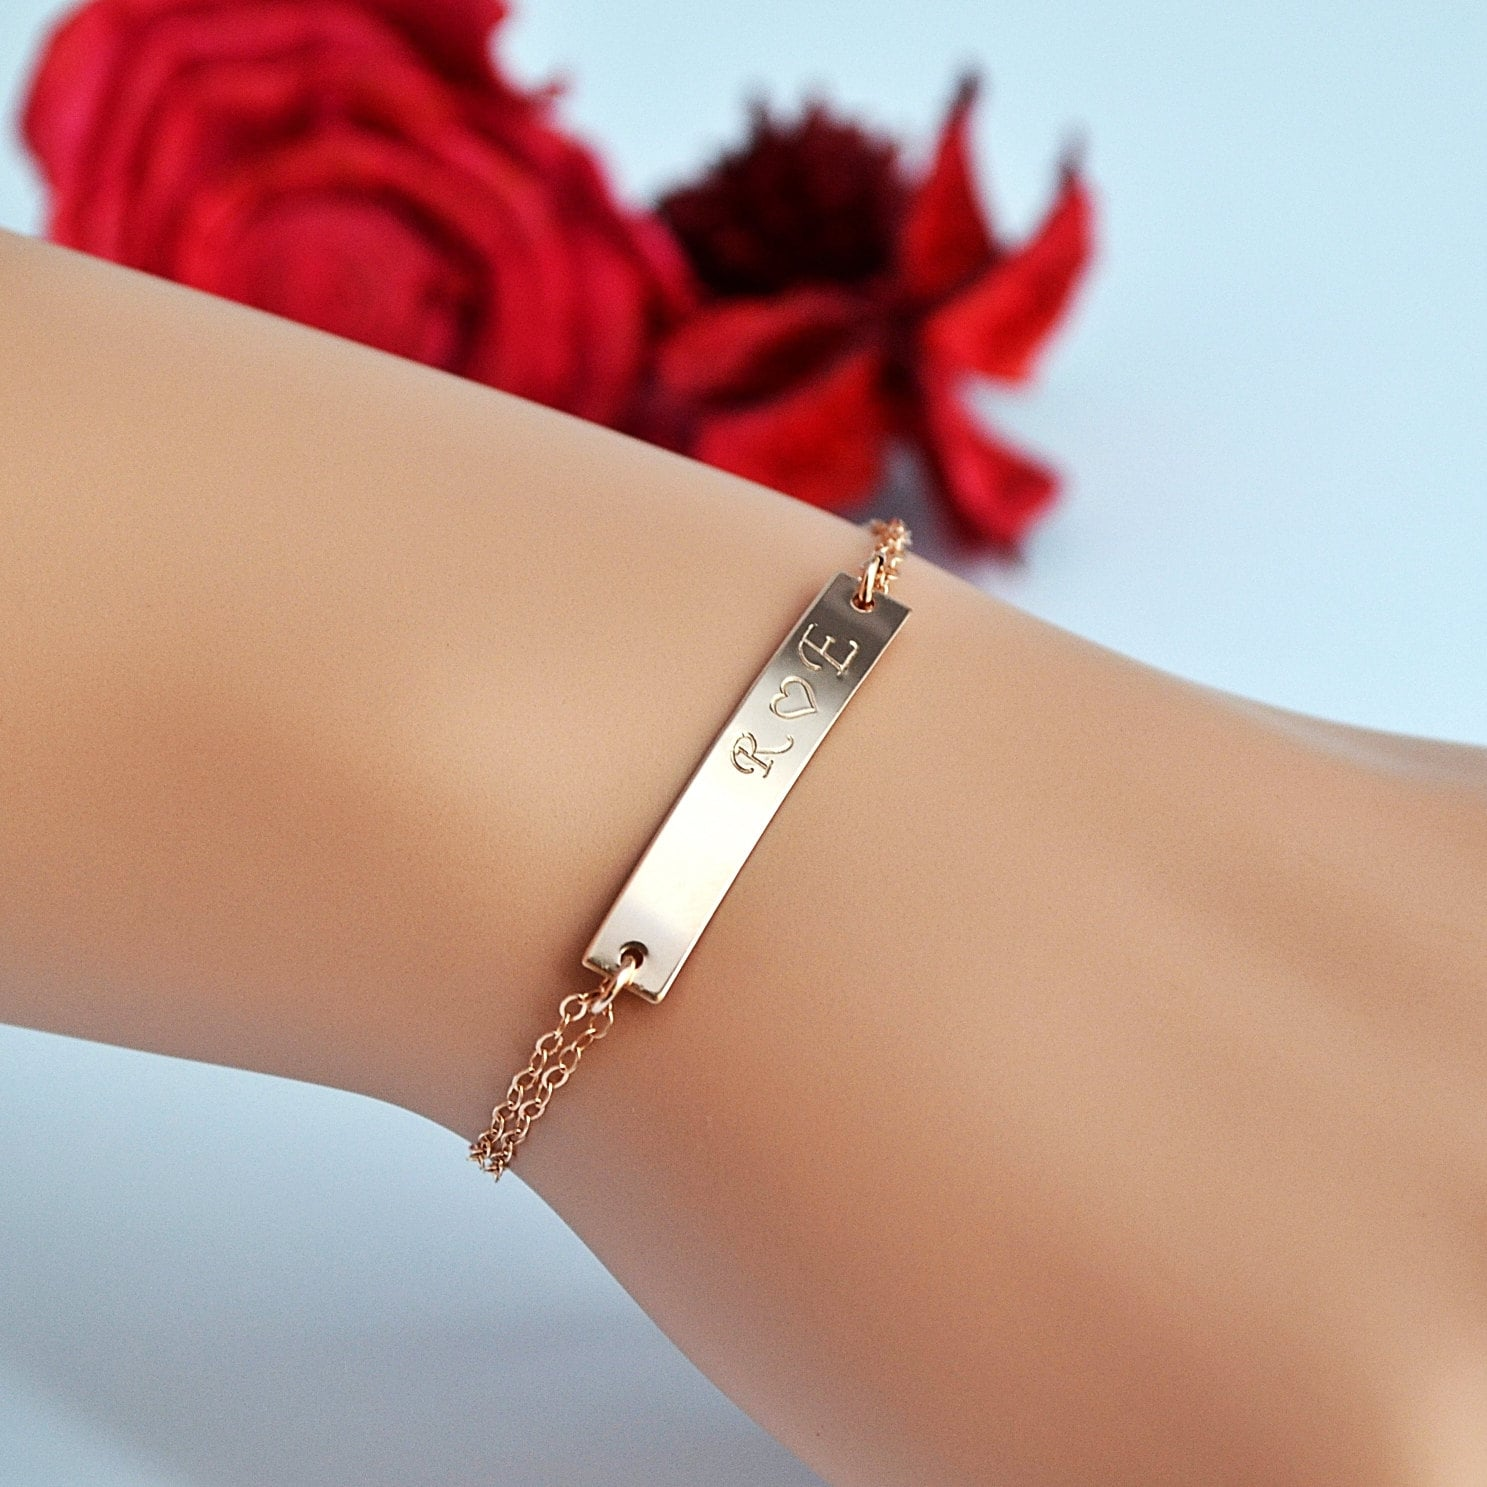 original personalised gold filled minetta minettajewellery bracelet com by product bar notonthehighstreet jewellery